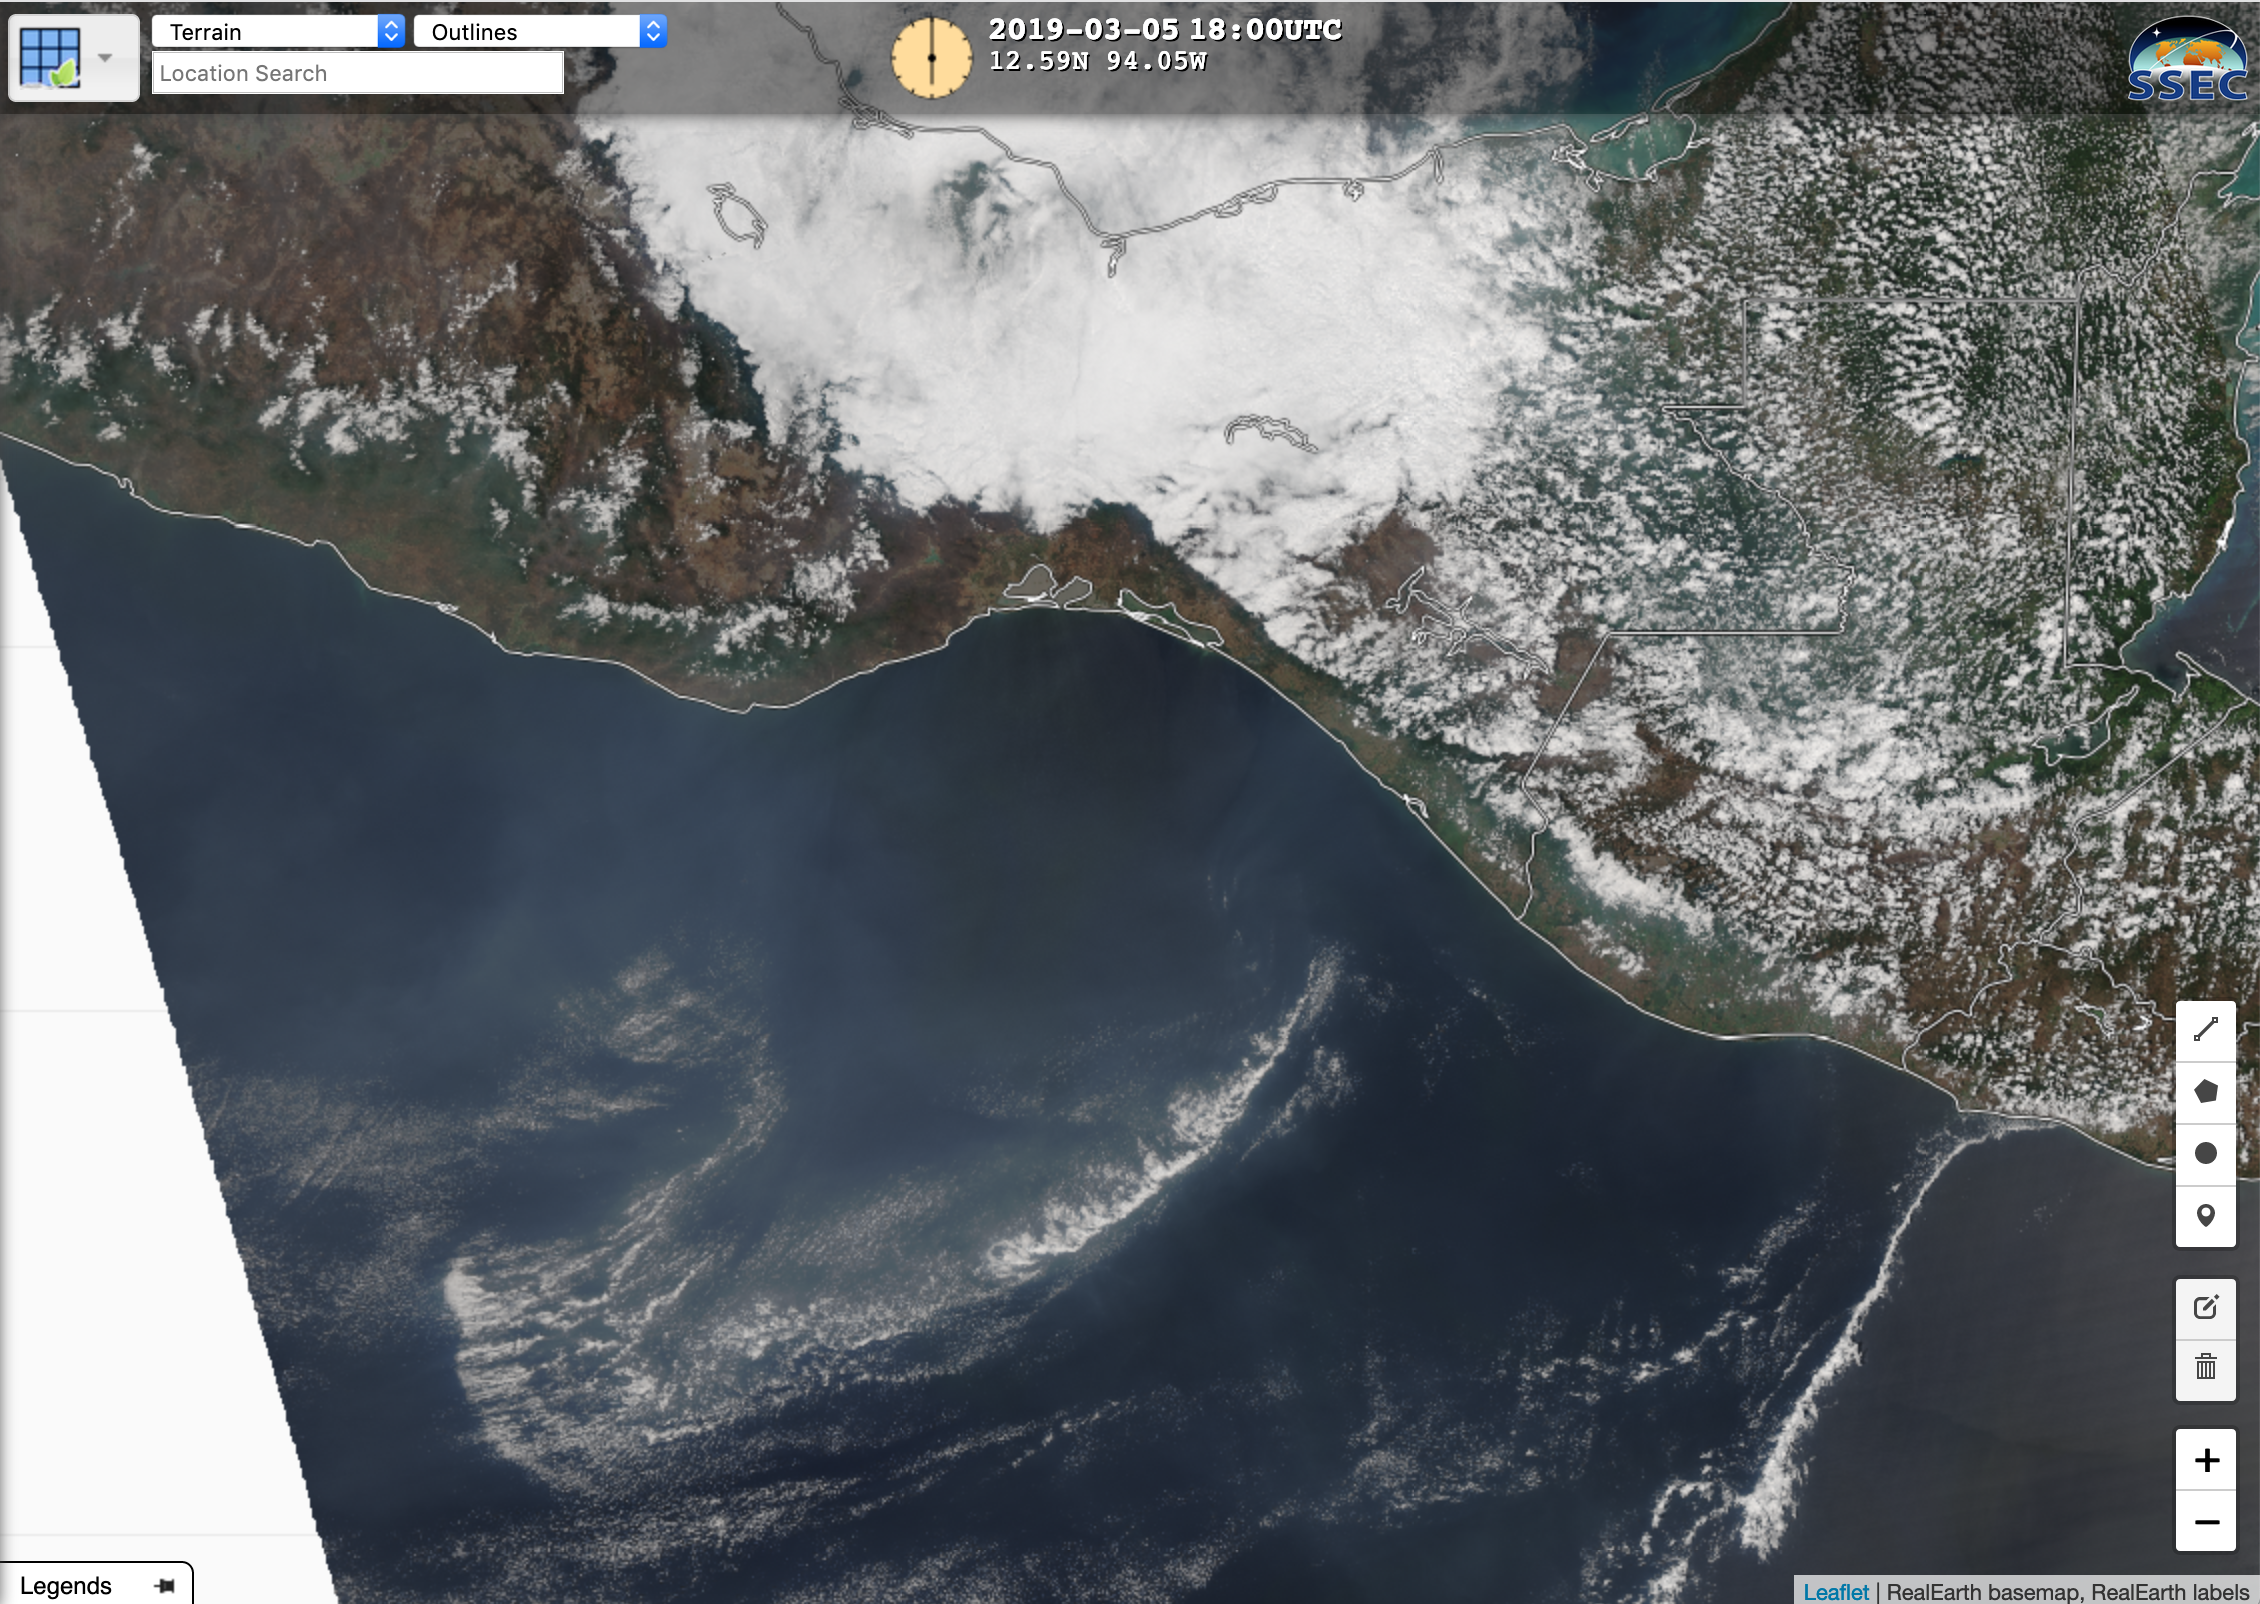 NOAA-20 VIIRS True Color Red-Green-Blue (RGB) image [click to enlarge]